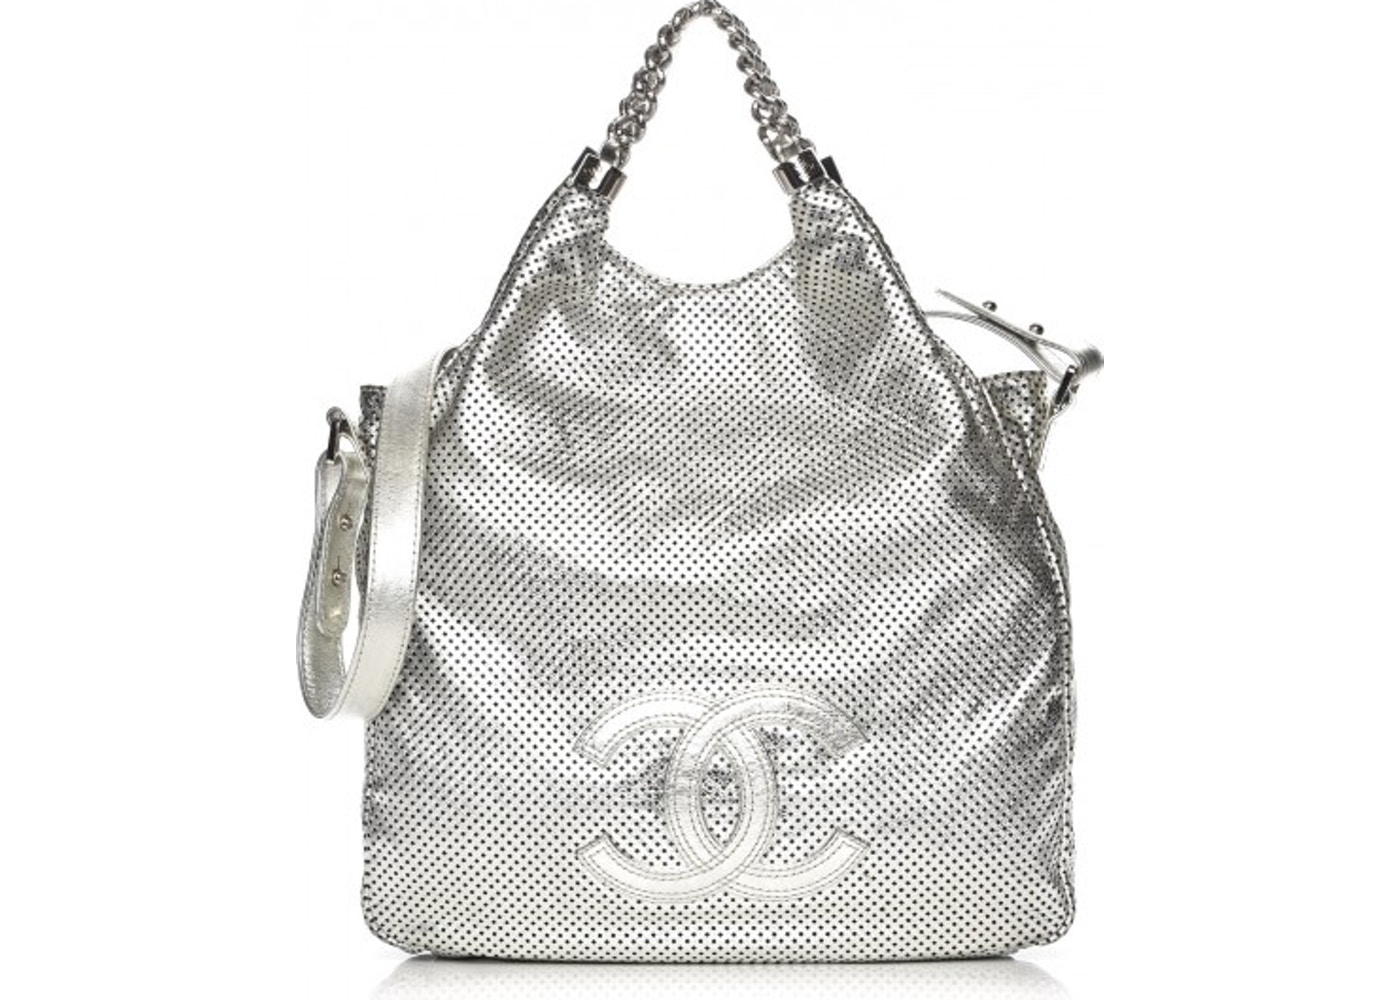 2ccf6bbbf62e Chanel Rodeo Drive Tote Perforated Metallic Large Silver. Perforated  Metallic Large Silver